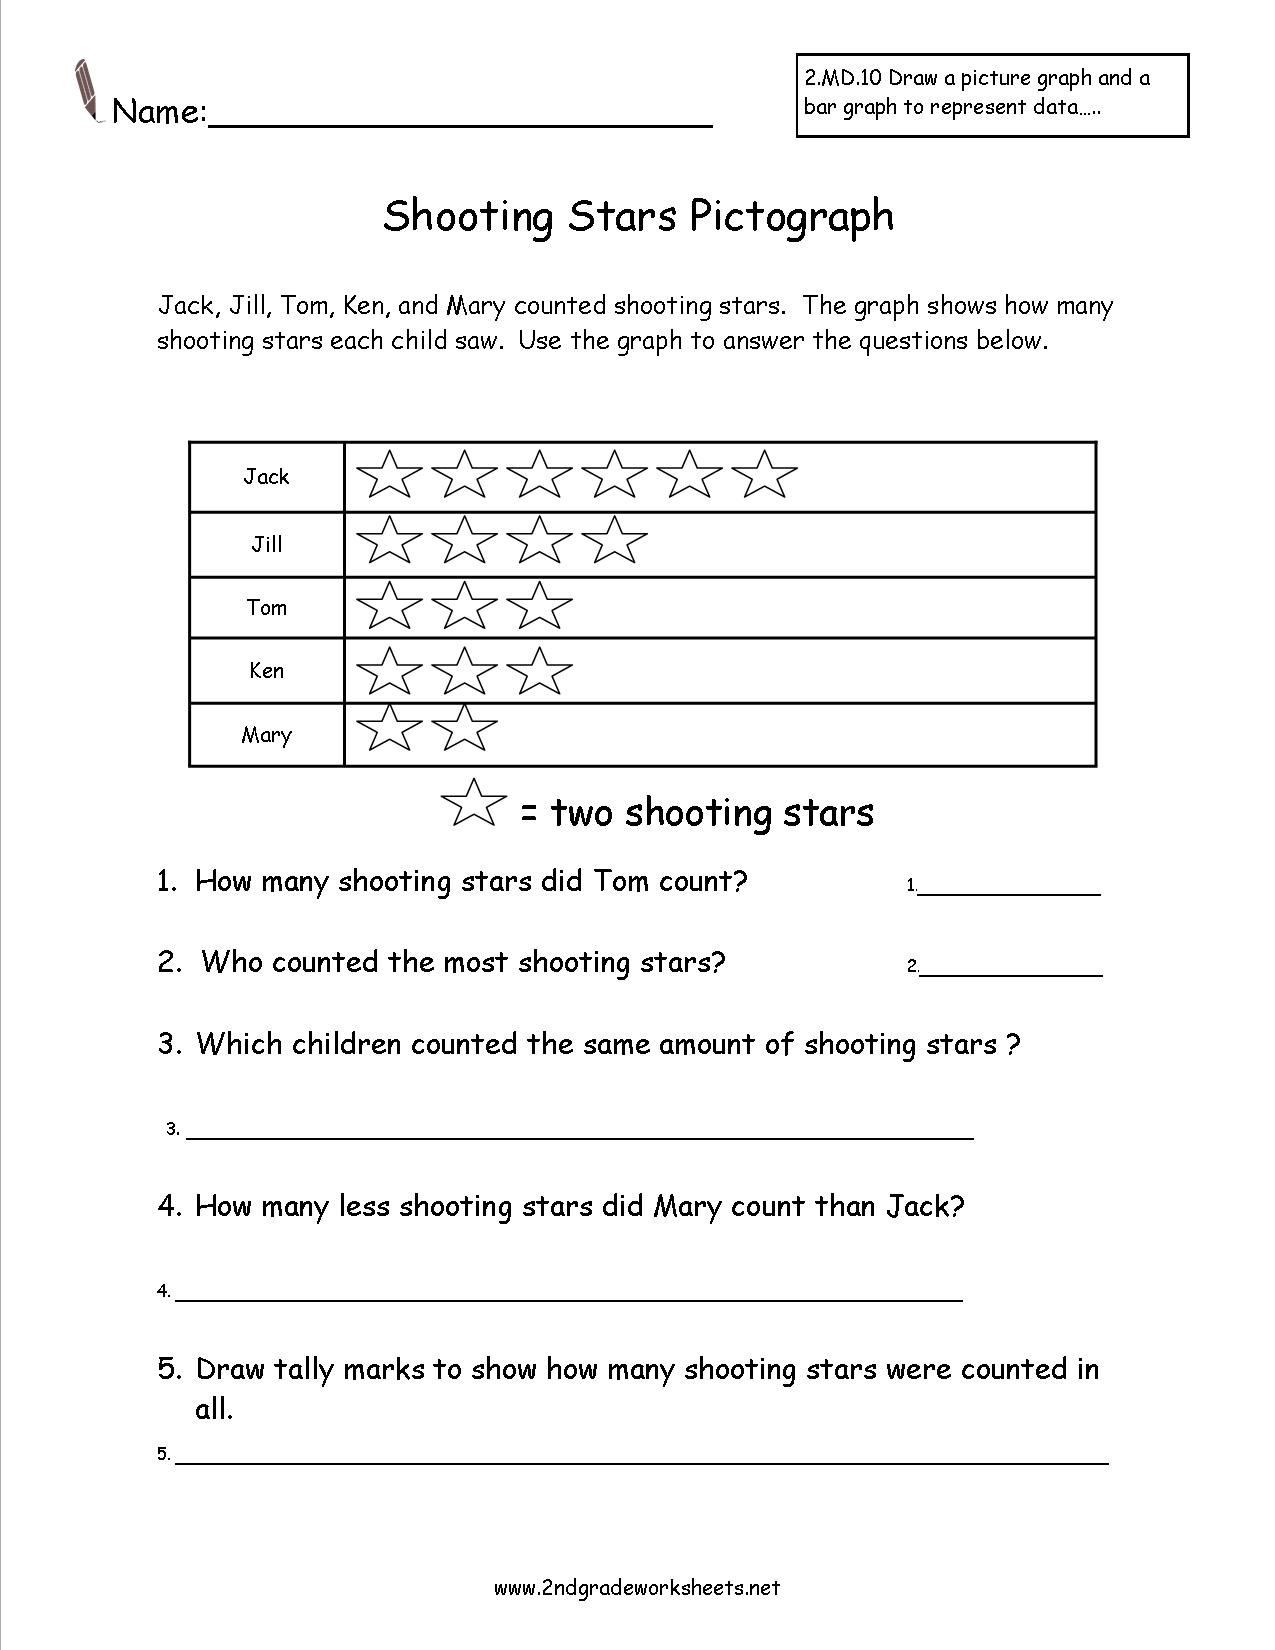 Phonics Worksheets for 3rd Graders Shooting Stars Pictograph Worksheet Phonics Worksheets